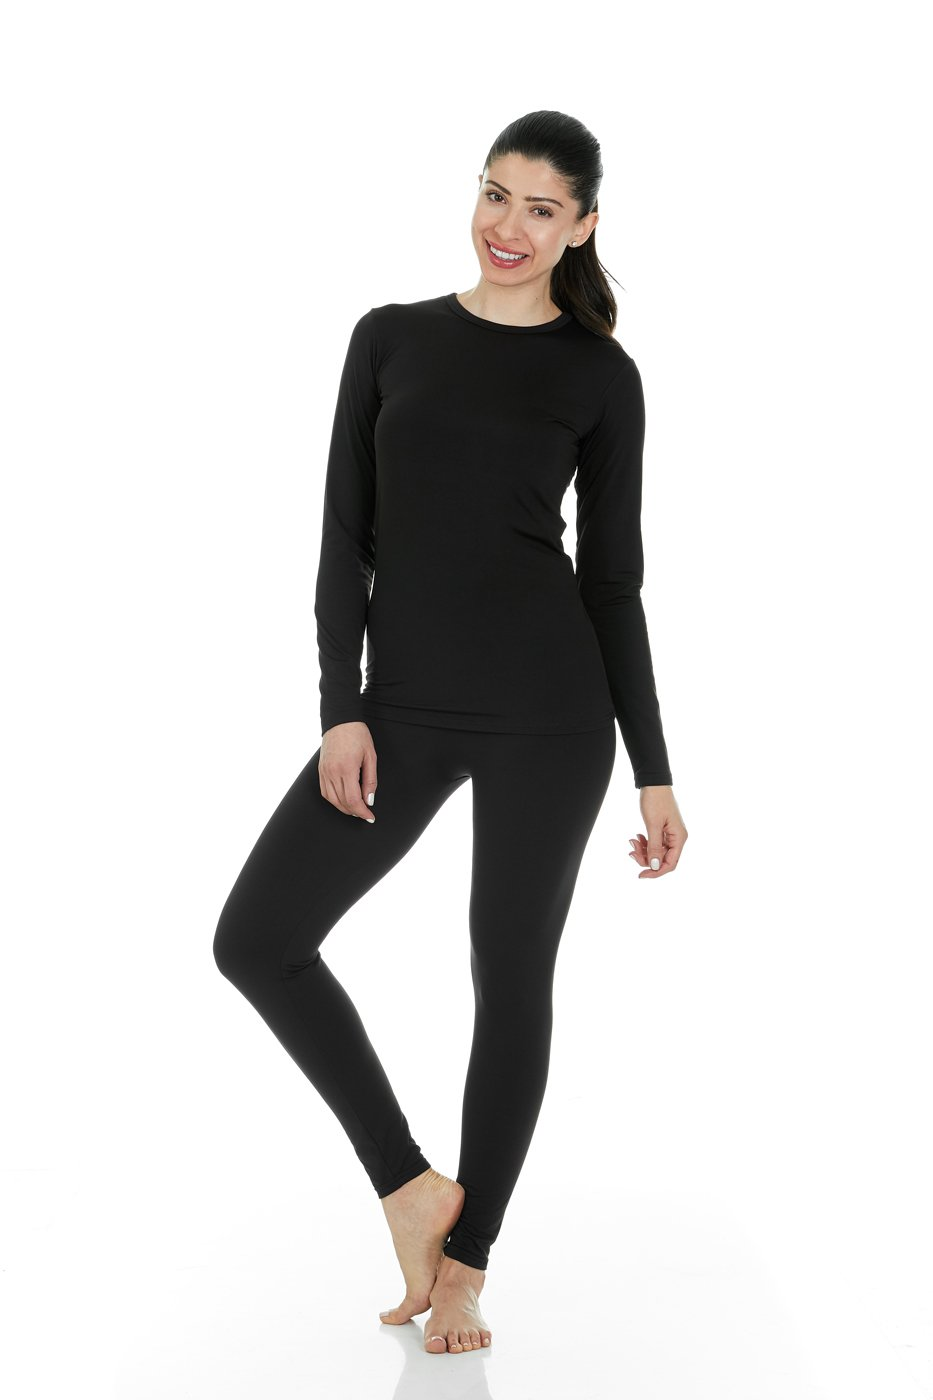 Thermajane Women's Ultra Soft Thermal Underwear Long Johns Set with Fleece Lined (XX-Small, Black)